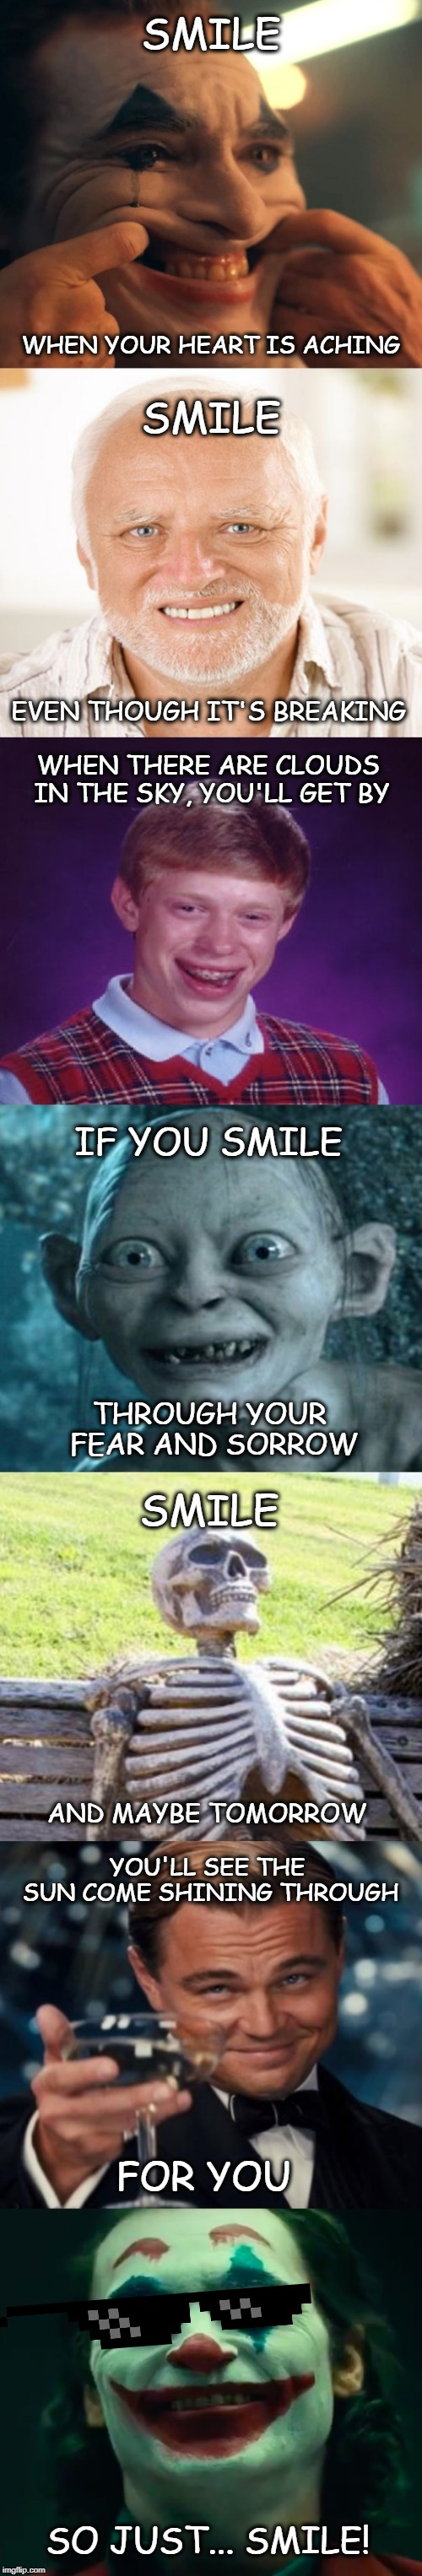 Let me put a smile on your face! :) | SMILE WHEN YOUR HEART IS ACHING SMILE EVEN THOUGH IT'S BREAKING WHEN THERE ARE CLOUDS IN THE SKY, YOU'LL GET BY IF YOU SMILE THROUGH YOUR FE | image tagged in long meme,the joker,joker,smile,happy,happy easter | made w/ Imgflip meme maker